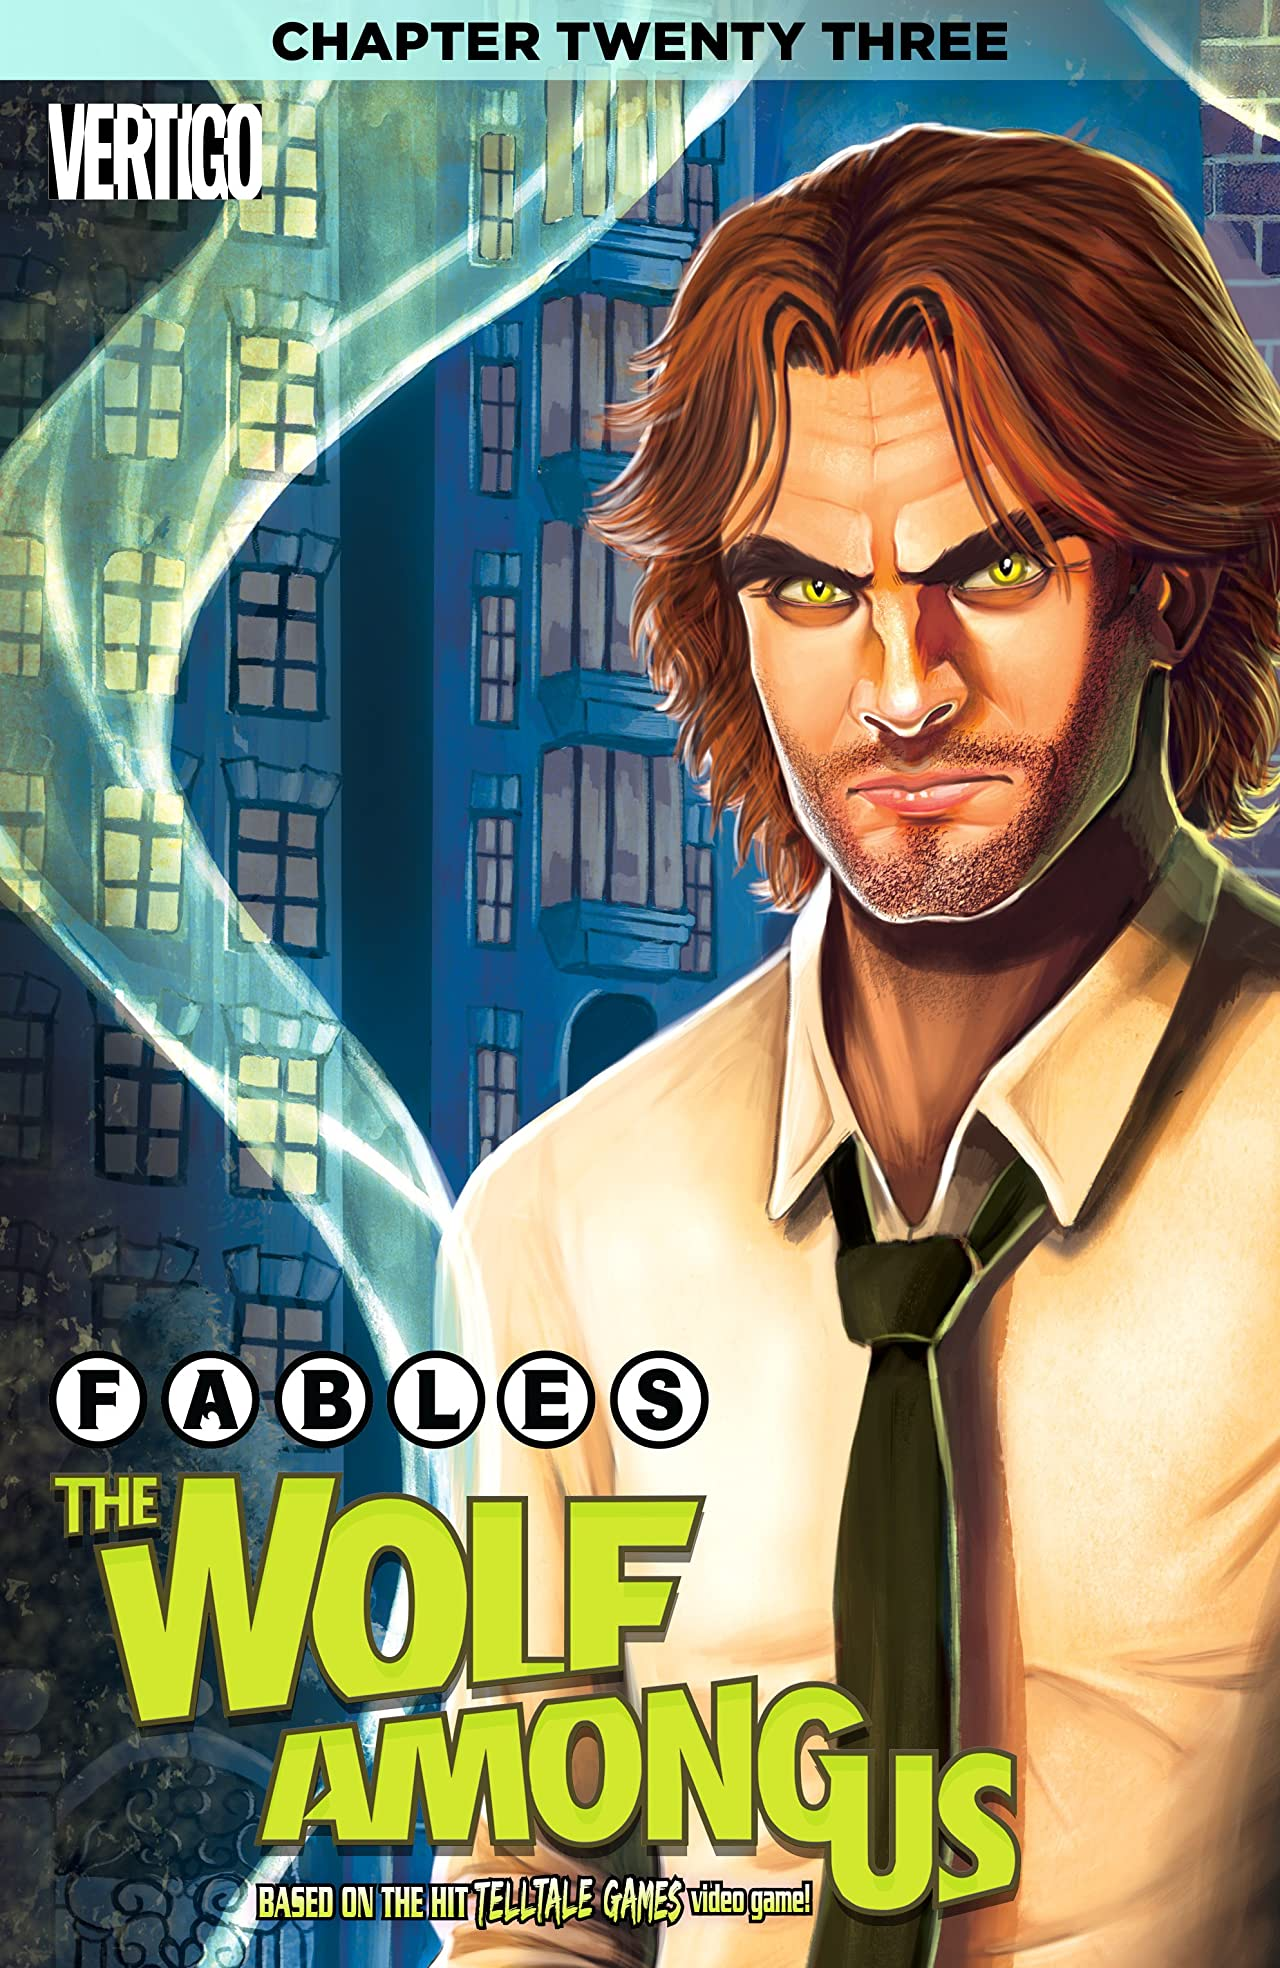 Fables: The Wolf Among Us #23